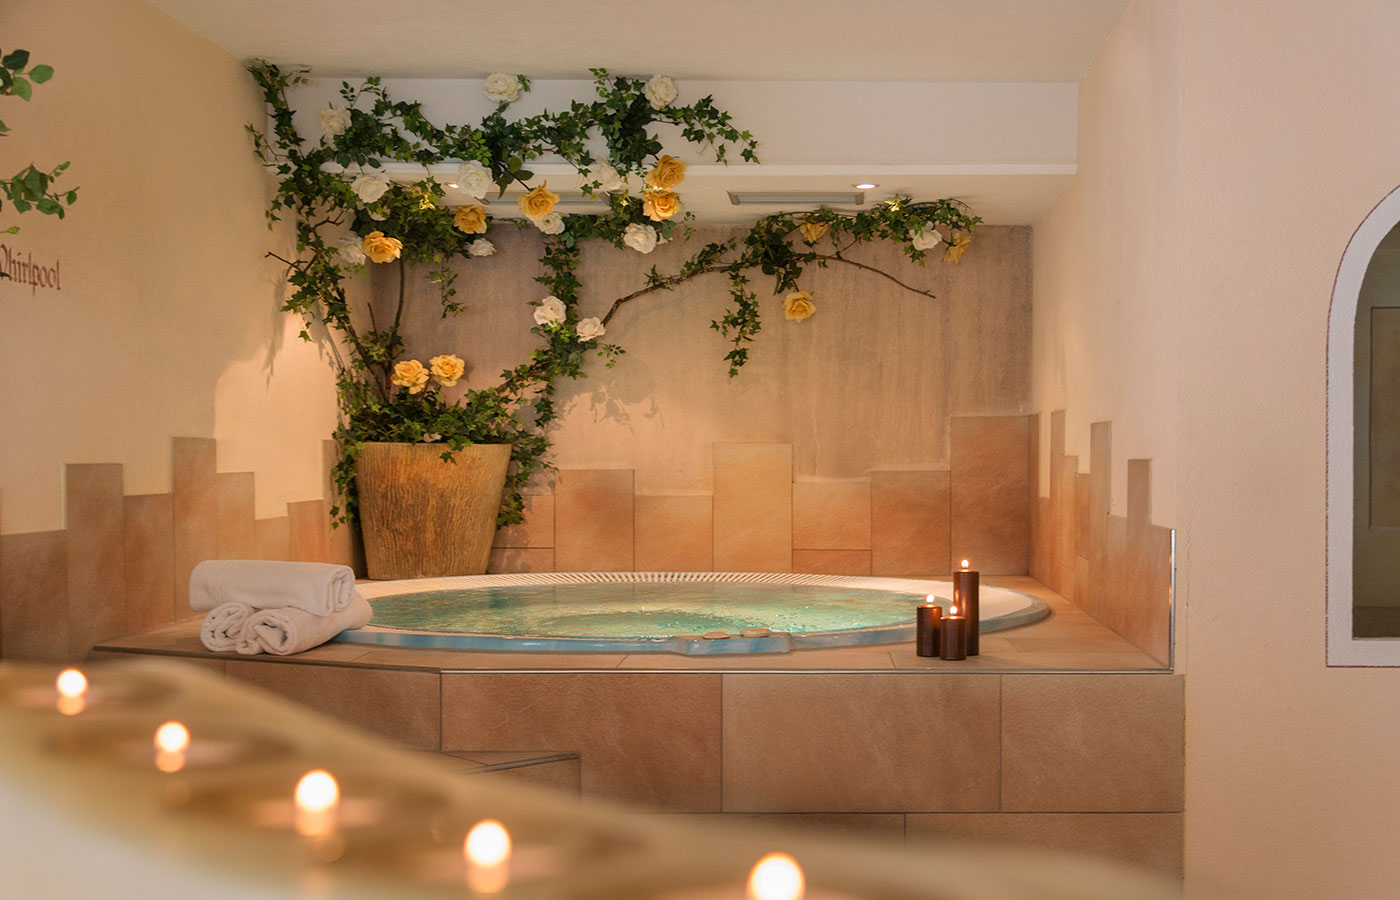 Circular jacuzzi with candles and soft lighting atmosphere in the spa at Hotel Waldheim